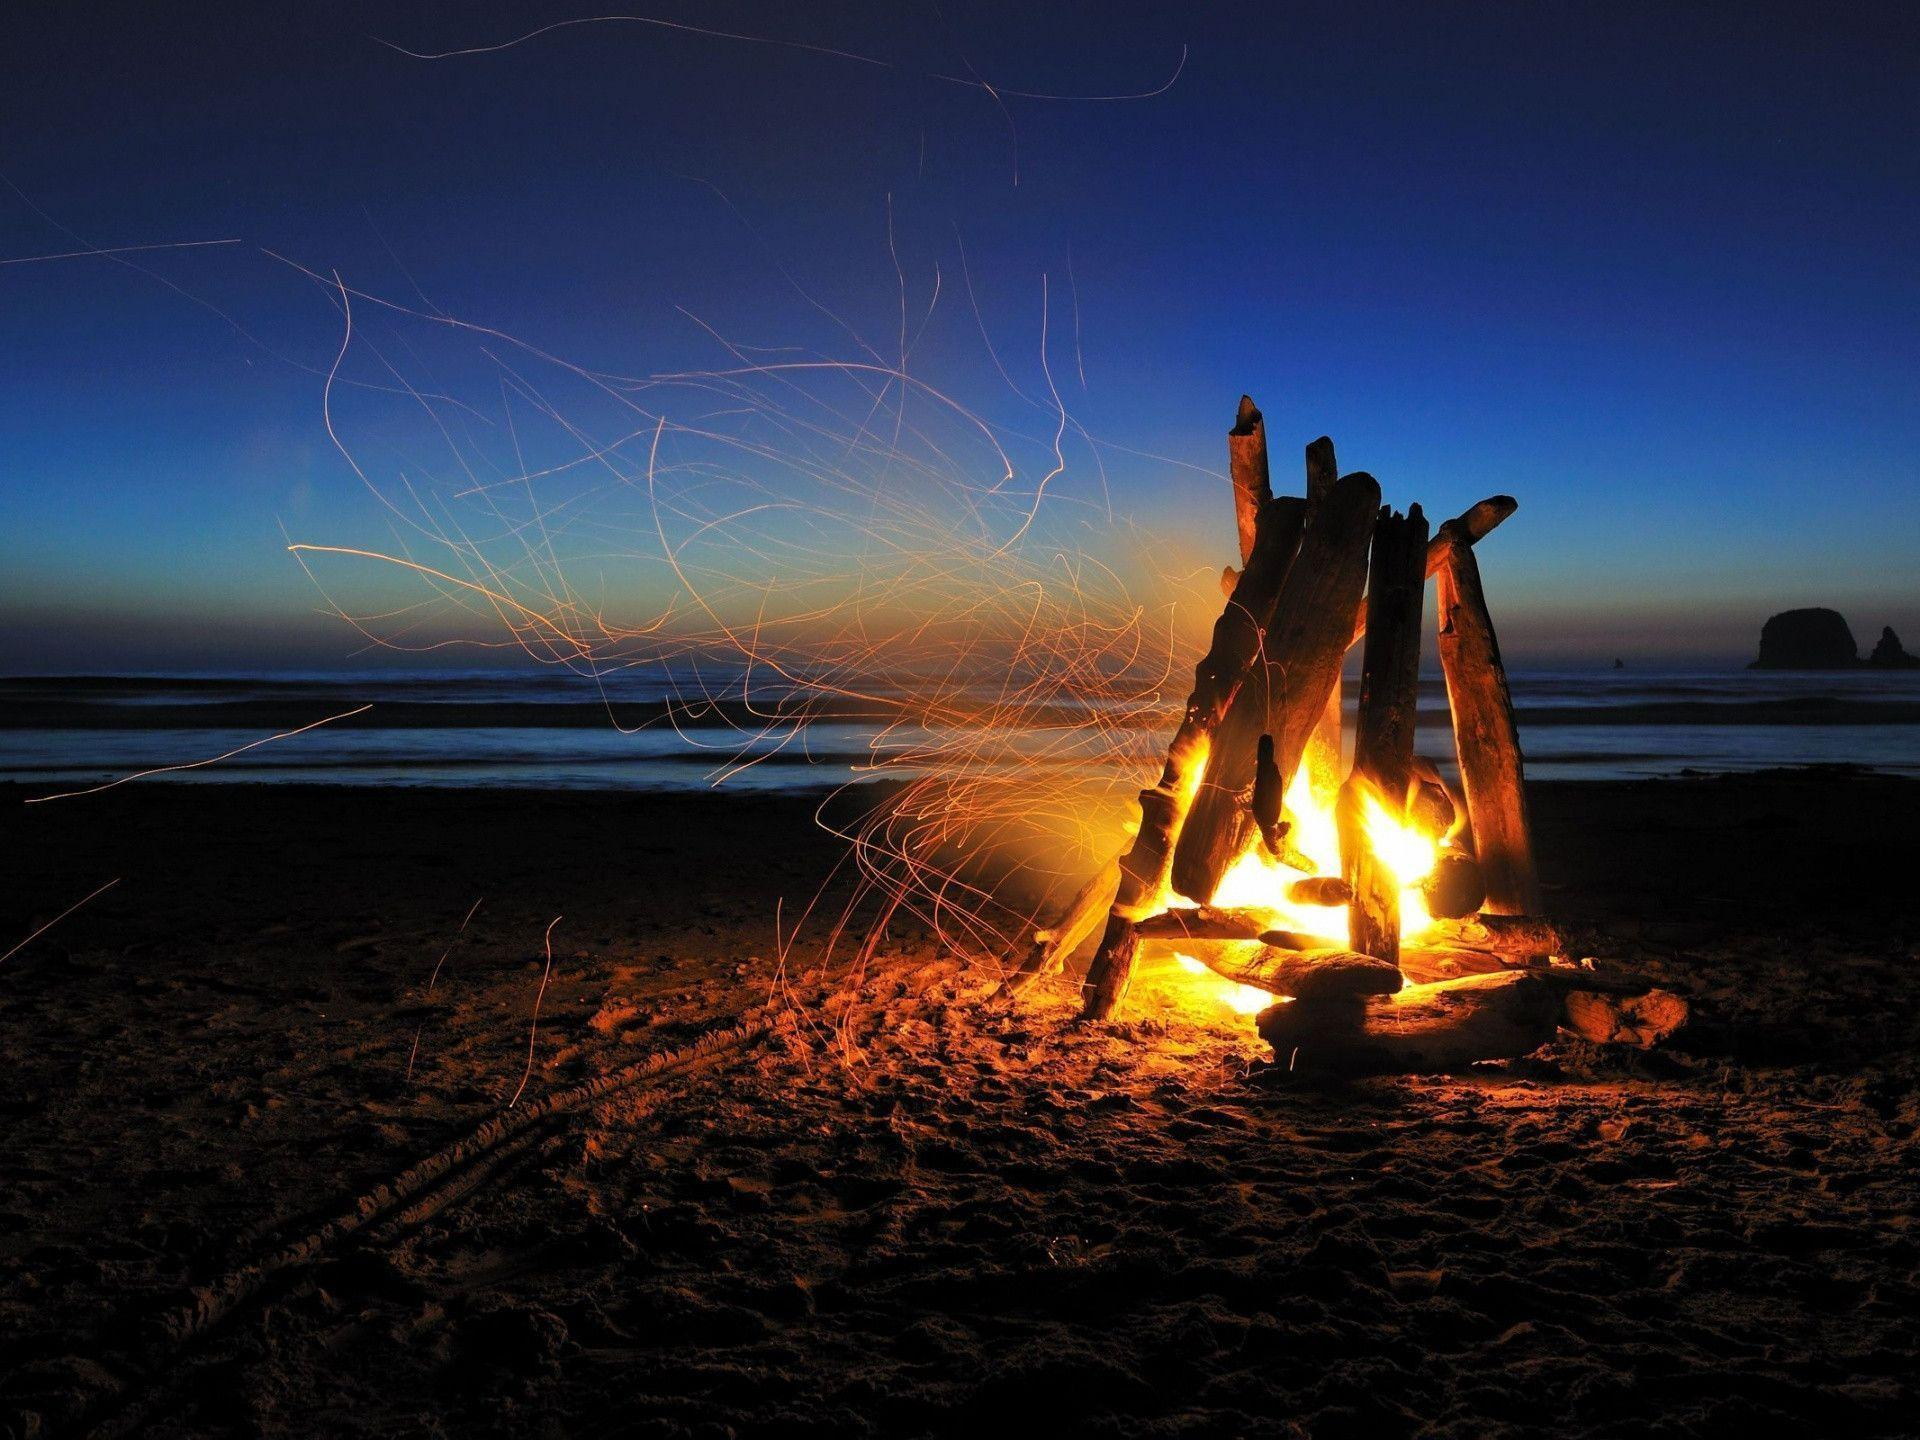 1920x1440 Beach campfire night Wallpapers